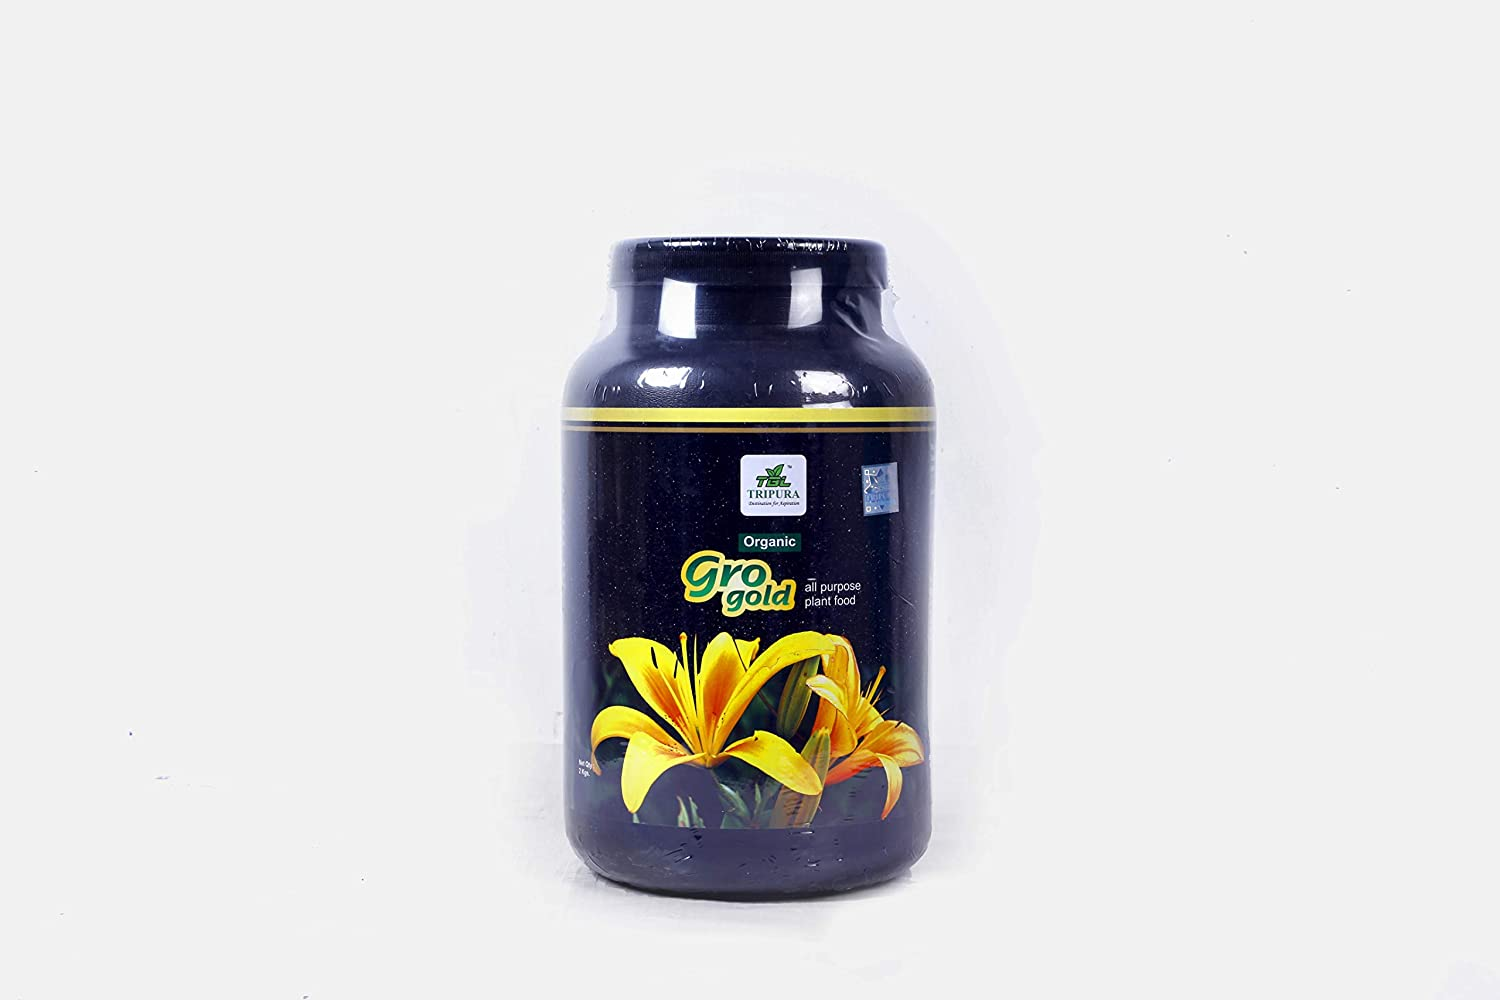 Buy Tbl Tripura Destination For Aspiration Organic Home Gardening Fertilizer For All Purpose Plant Food Tripura Gro Gold 2 Kg Online At Low Prices In India Amazon In